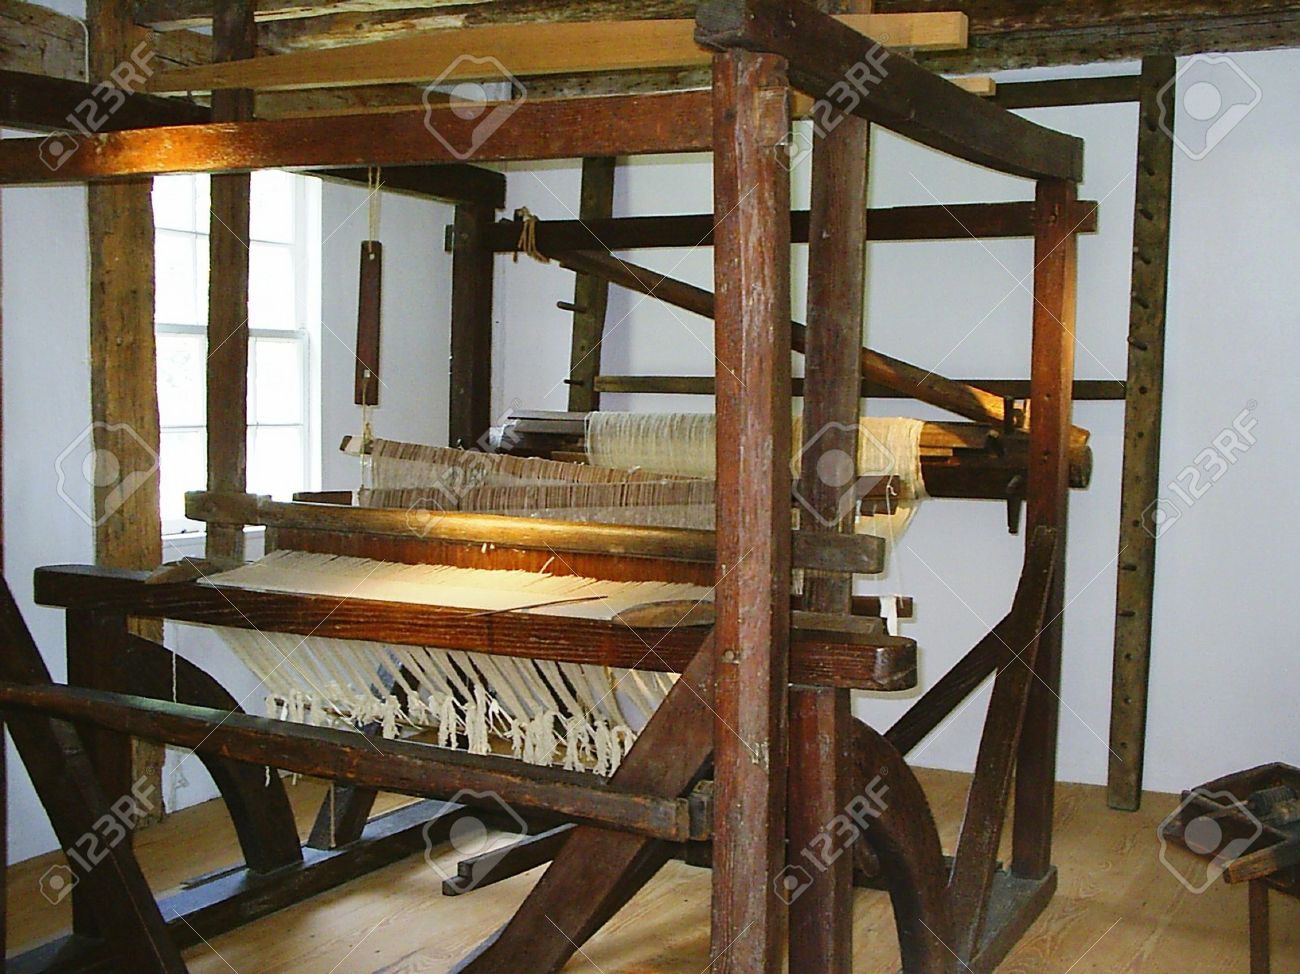 Image result for old loom photo